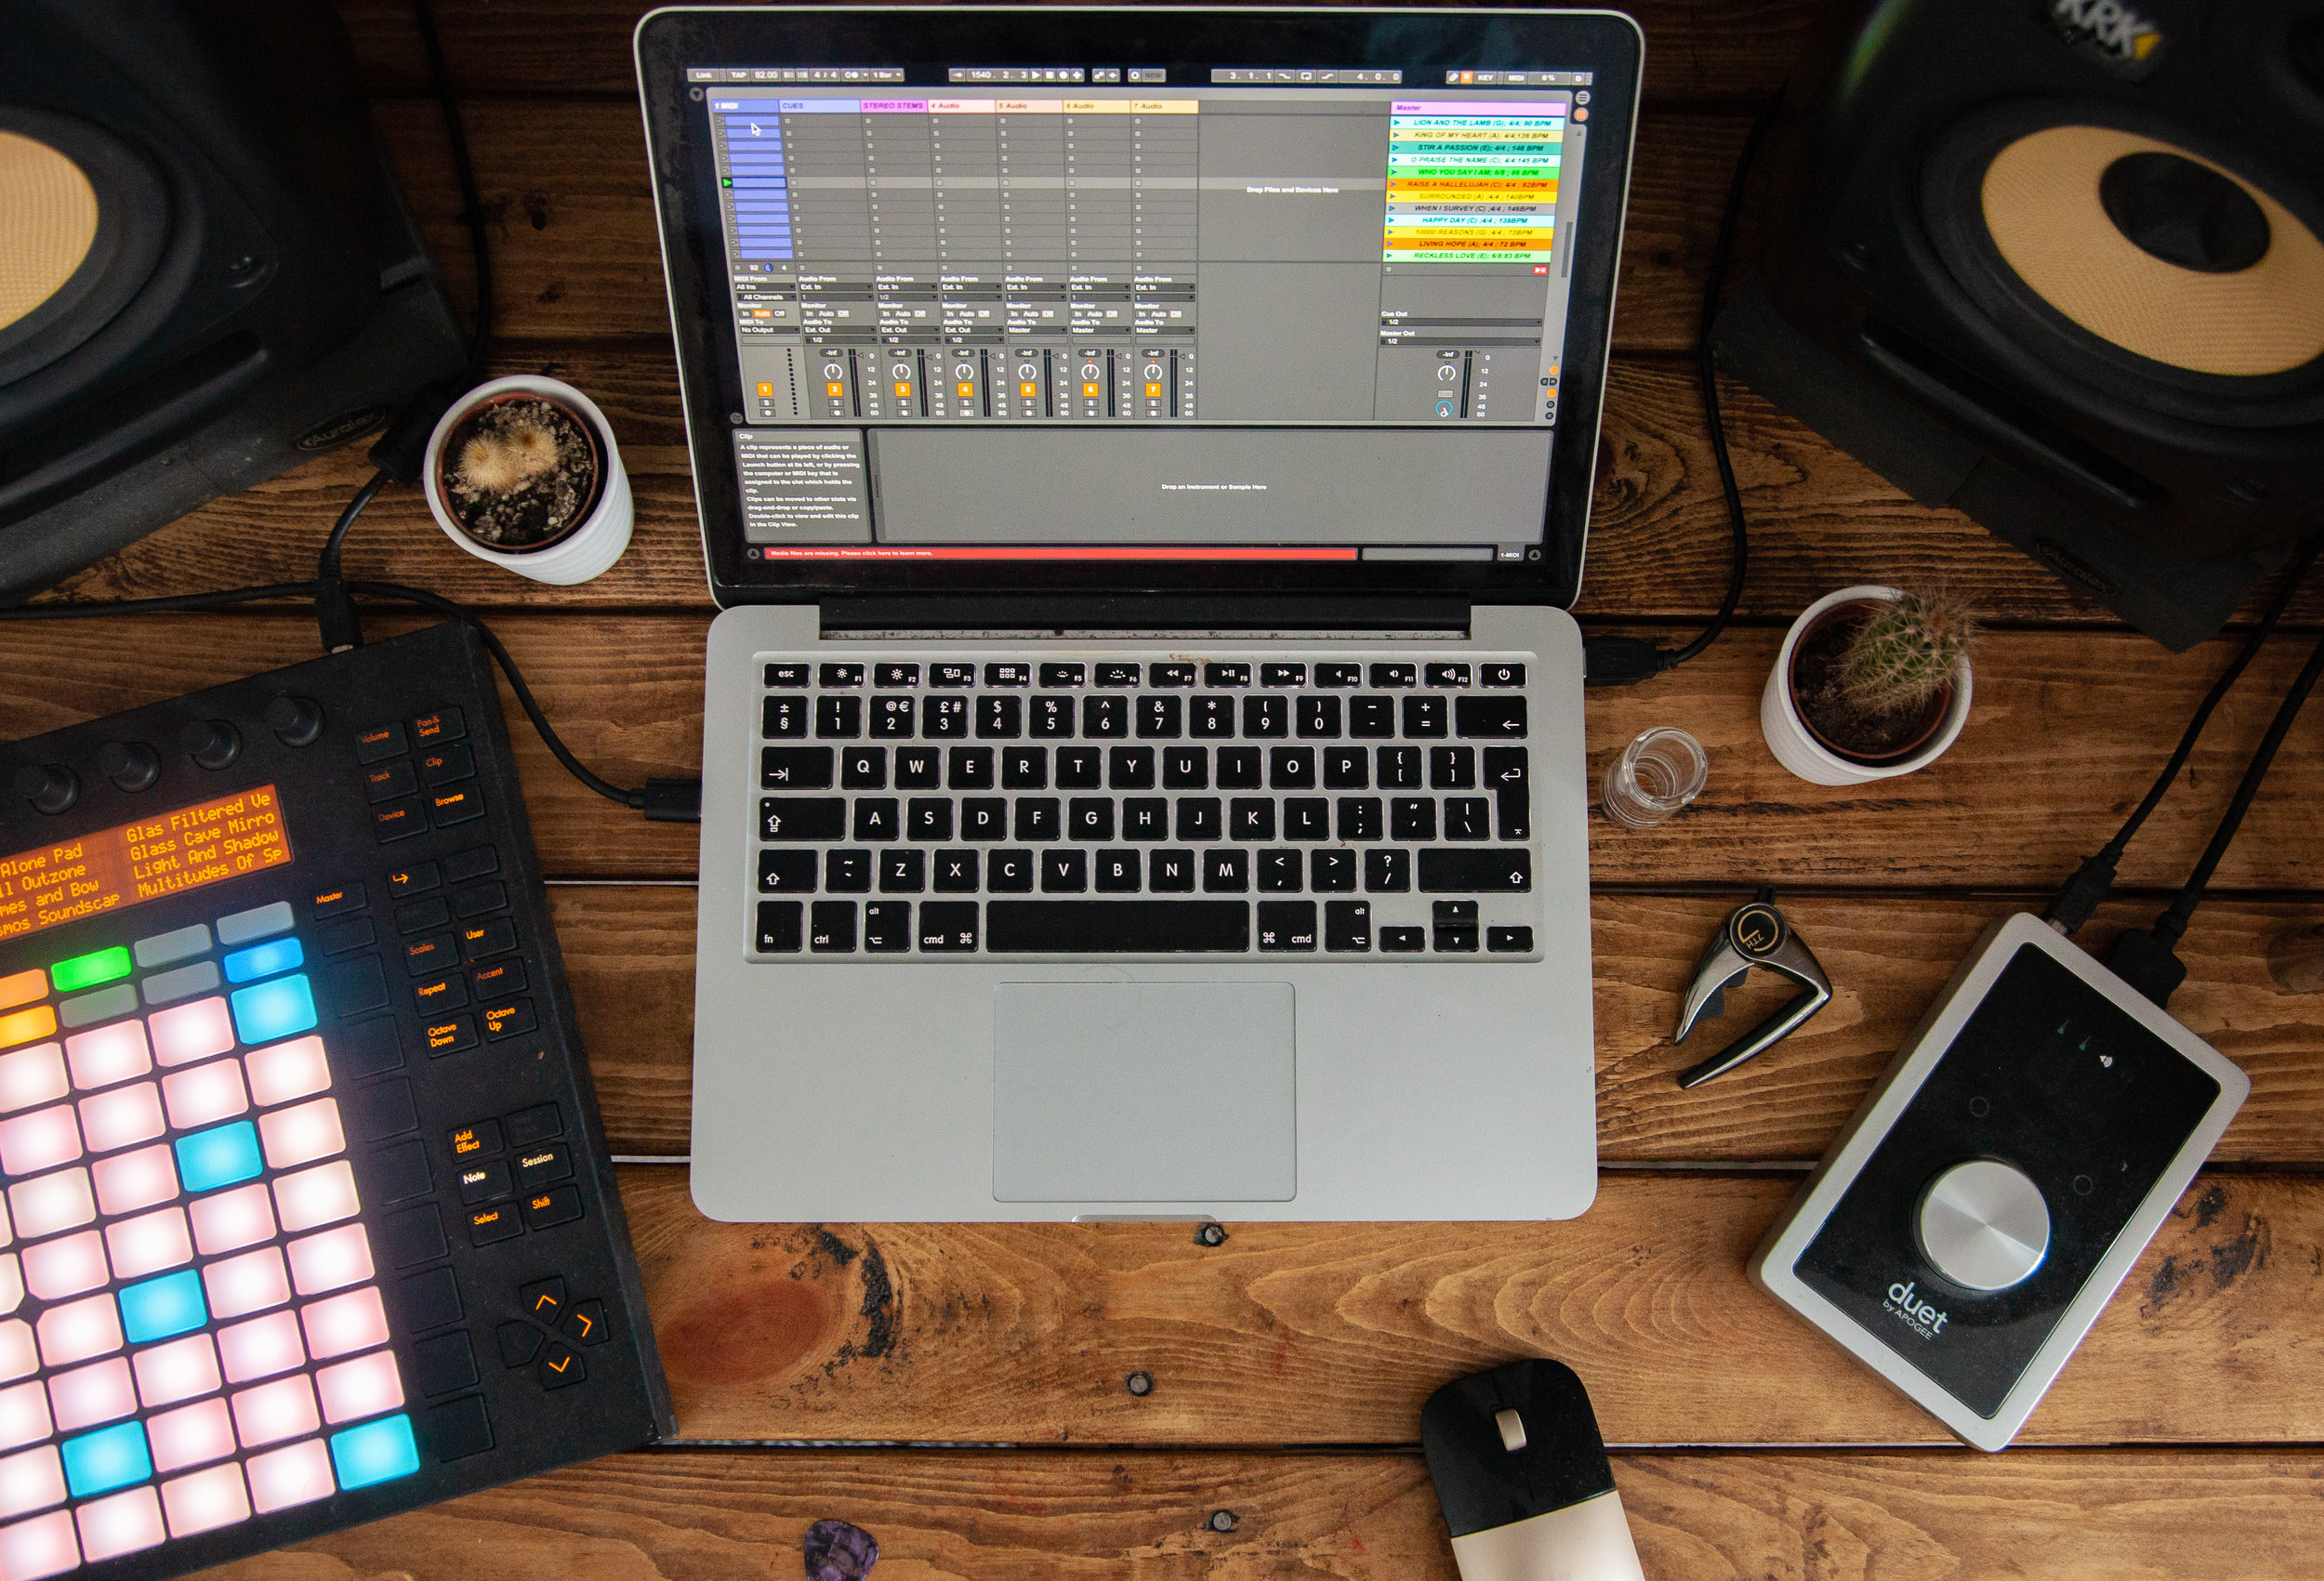 Techniques & Tools - Learn essential techniques with the tools you need to produce music.